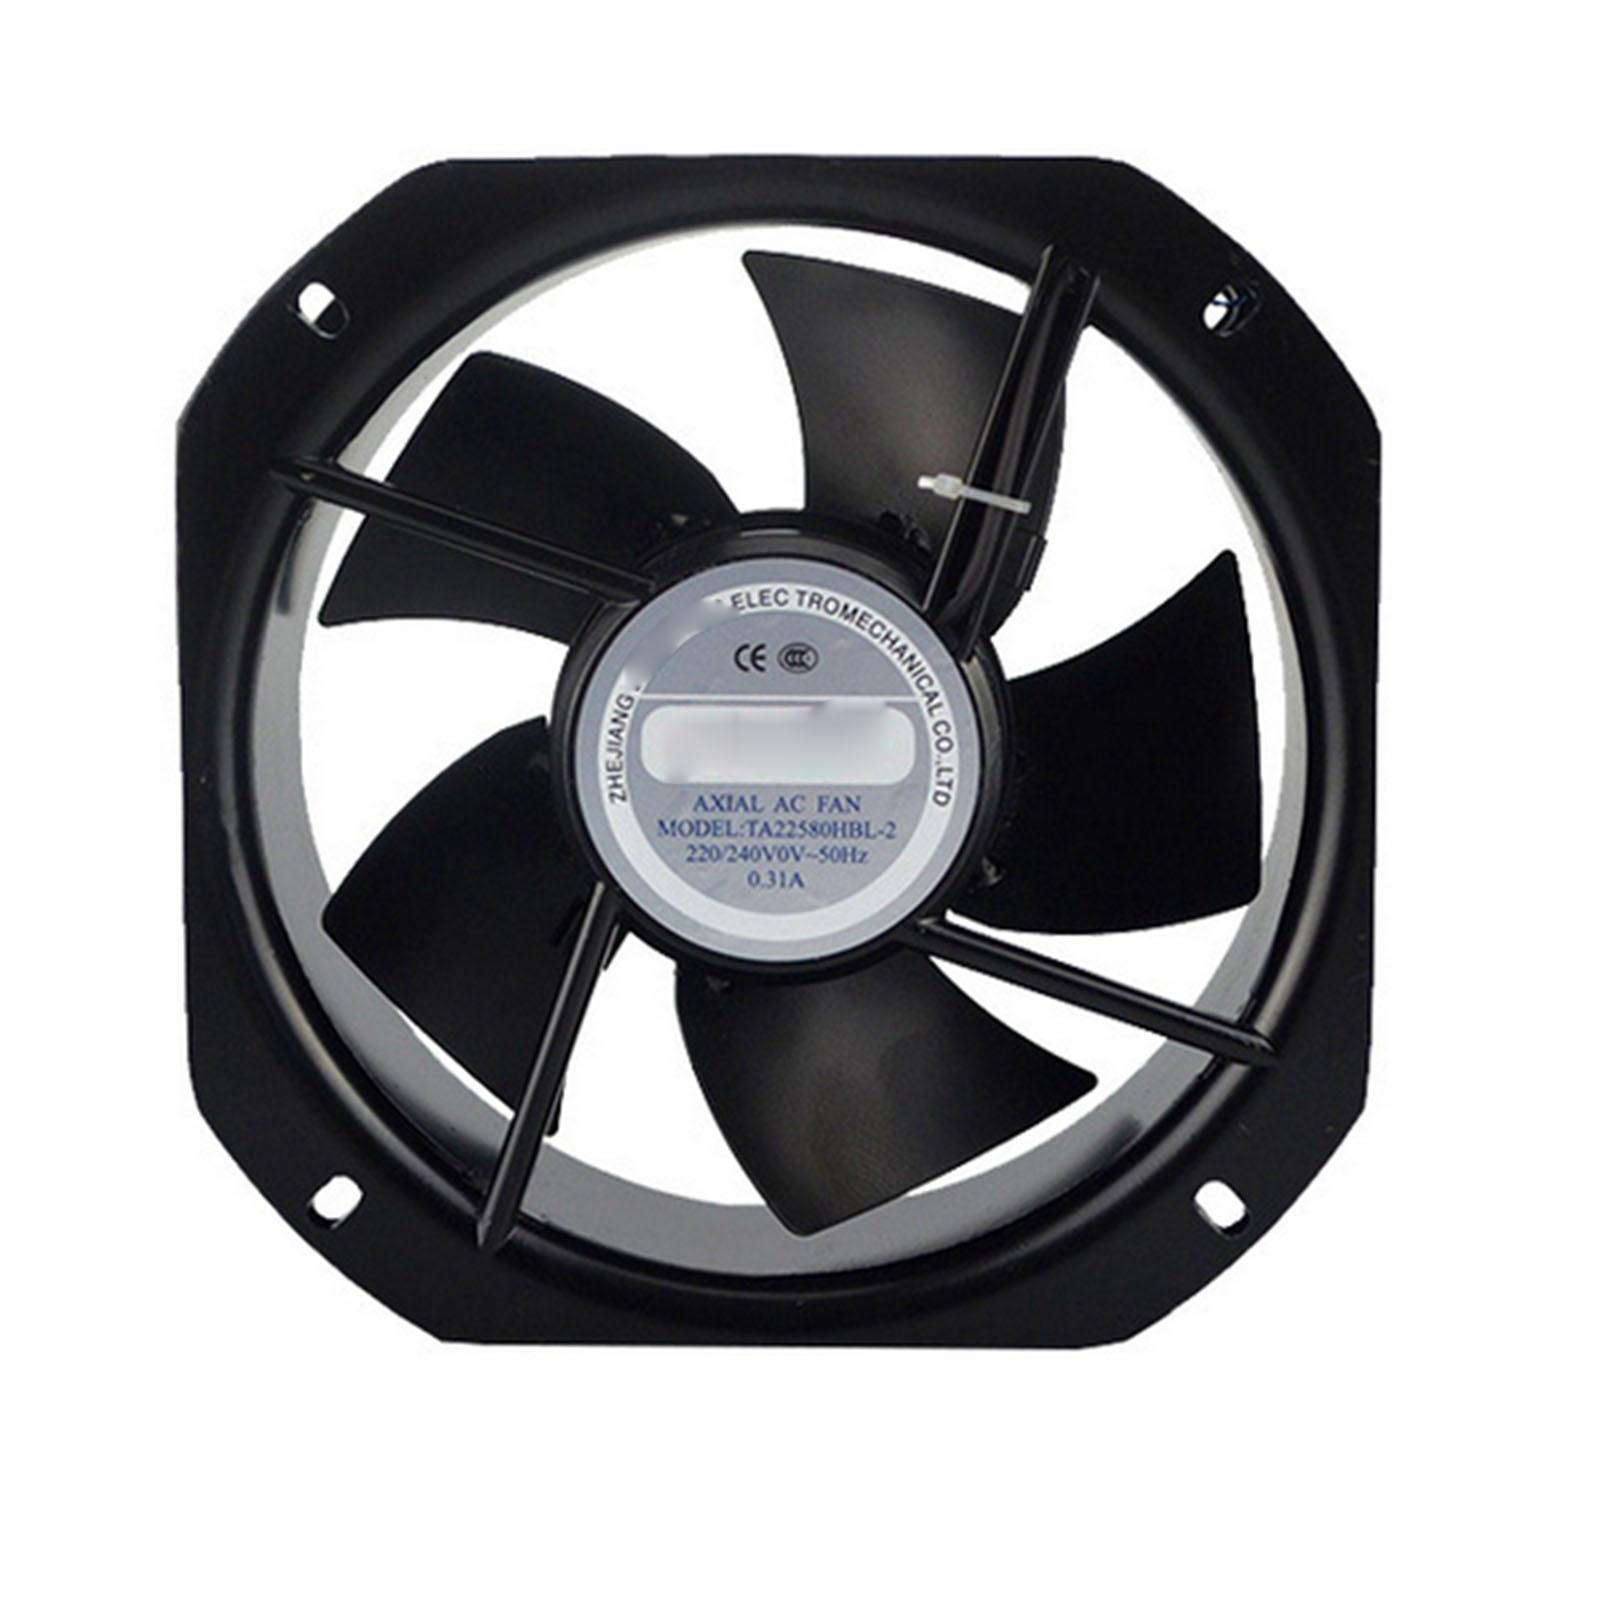 220V AC 225x225x80mm Axial Radiator Fan 588CFM 2500RPM Ball Bearing High Speed 220v ac 280x280x80mm axial radiator fan 1341cfm 2400rpm ball bearing high speed